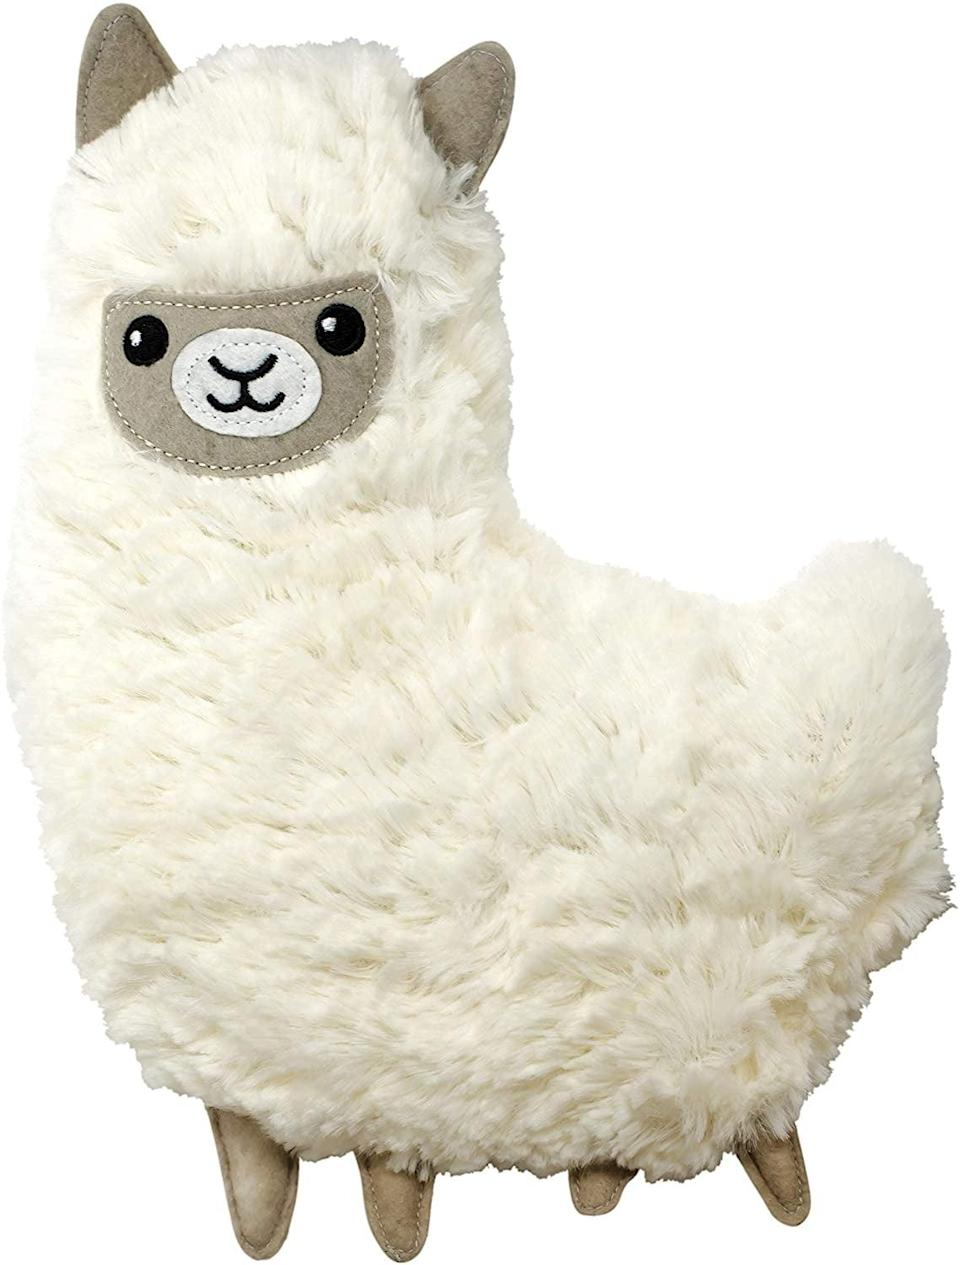 <p>They can simply heat up this <span>Huggable Llama Heating Pad &amp; Pillow</span> ($30) and cuddle with it.</p>